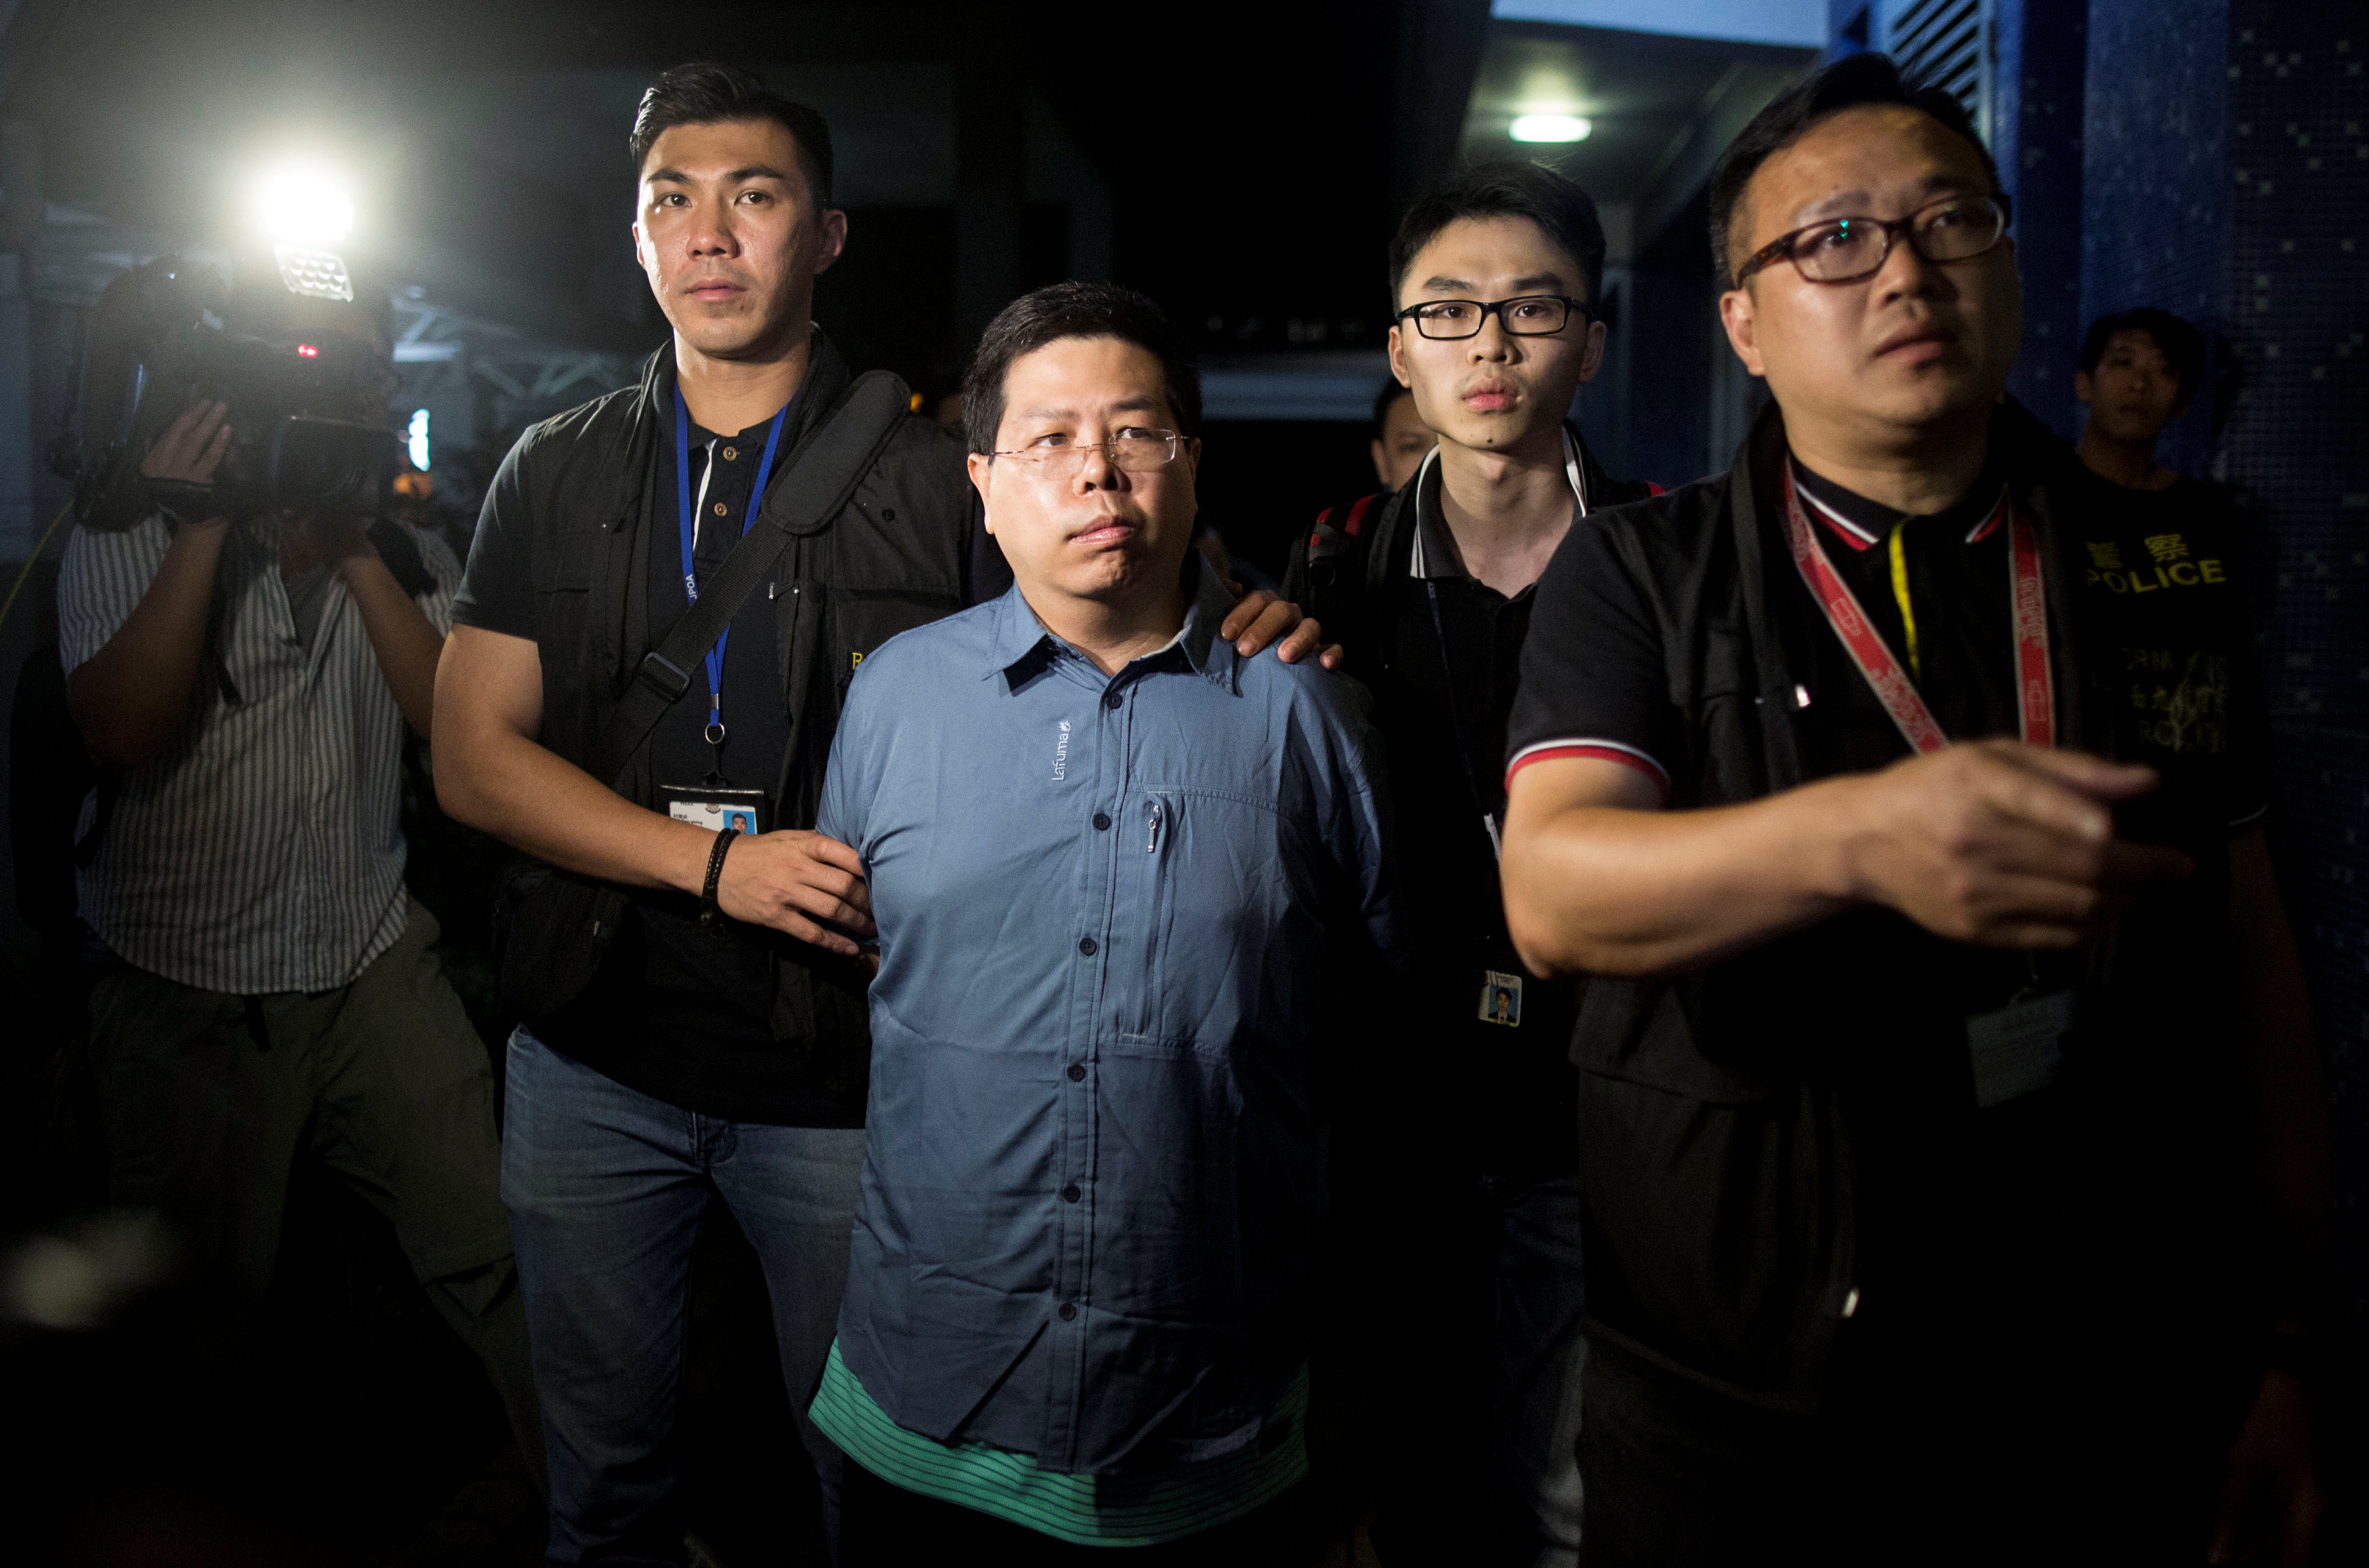 Hong Kong's Democratic Party member held for 'misleading' police after abduction claims